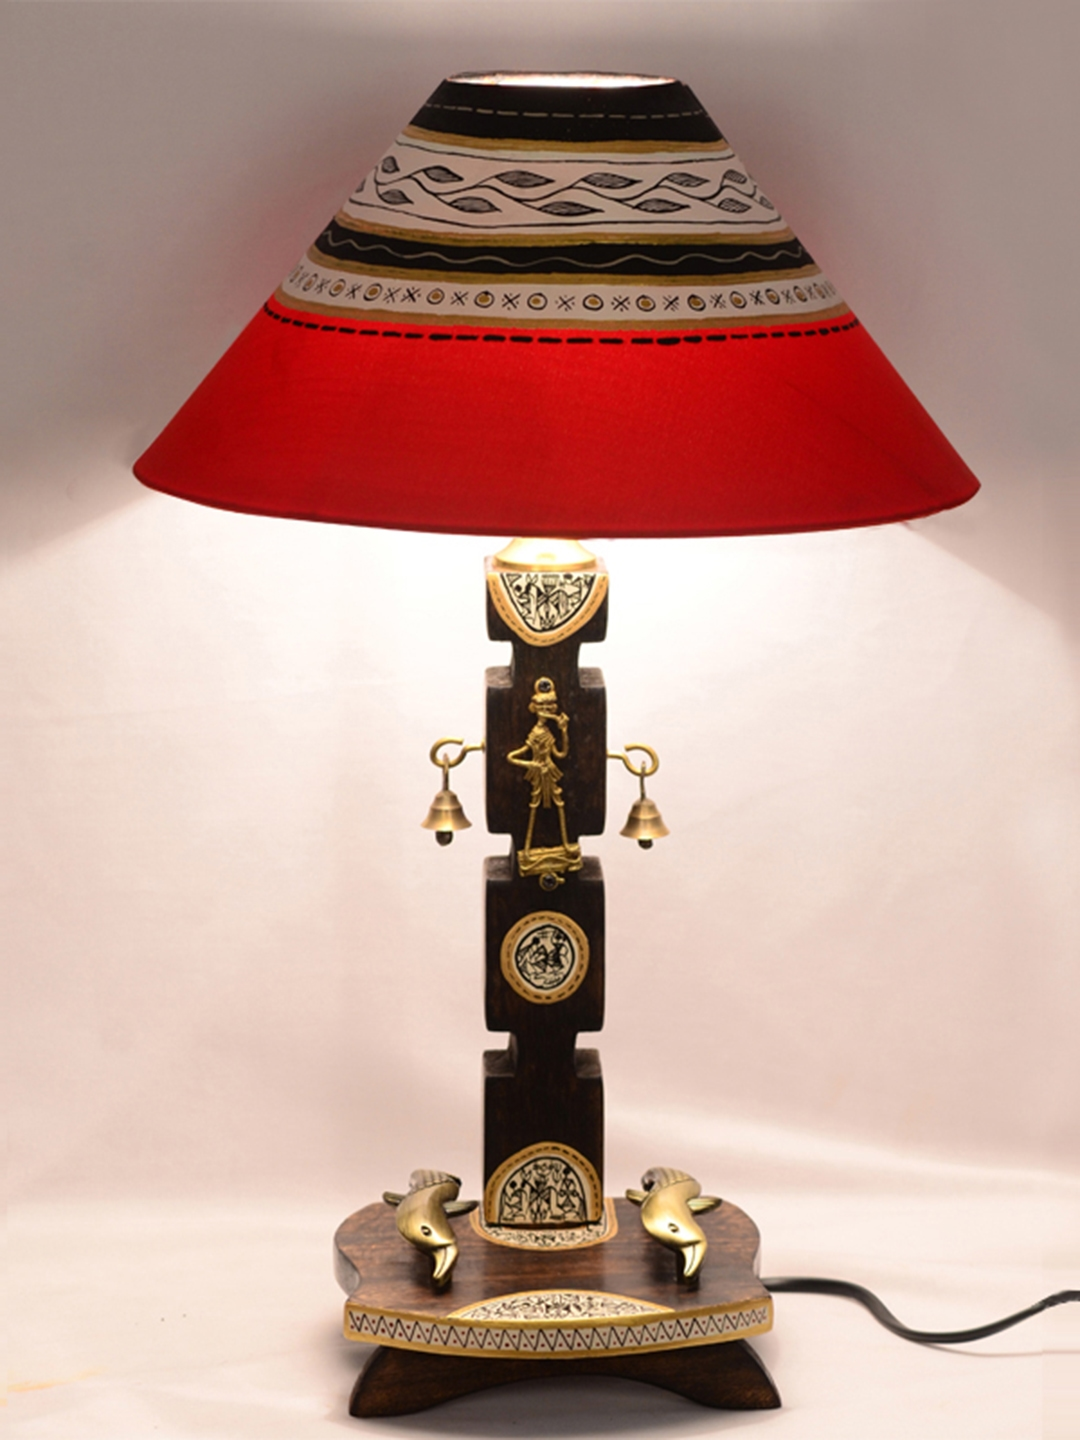 ExclusiveLane Red   Brown 20 Inch Dhokra   Warli Handpainted Wooden Table Lamp with Shade